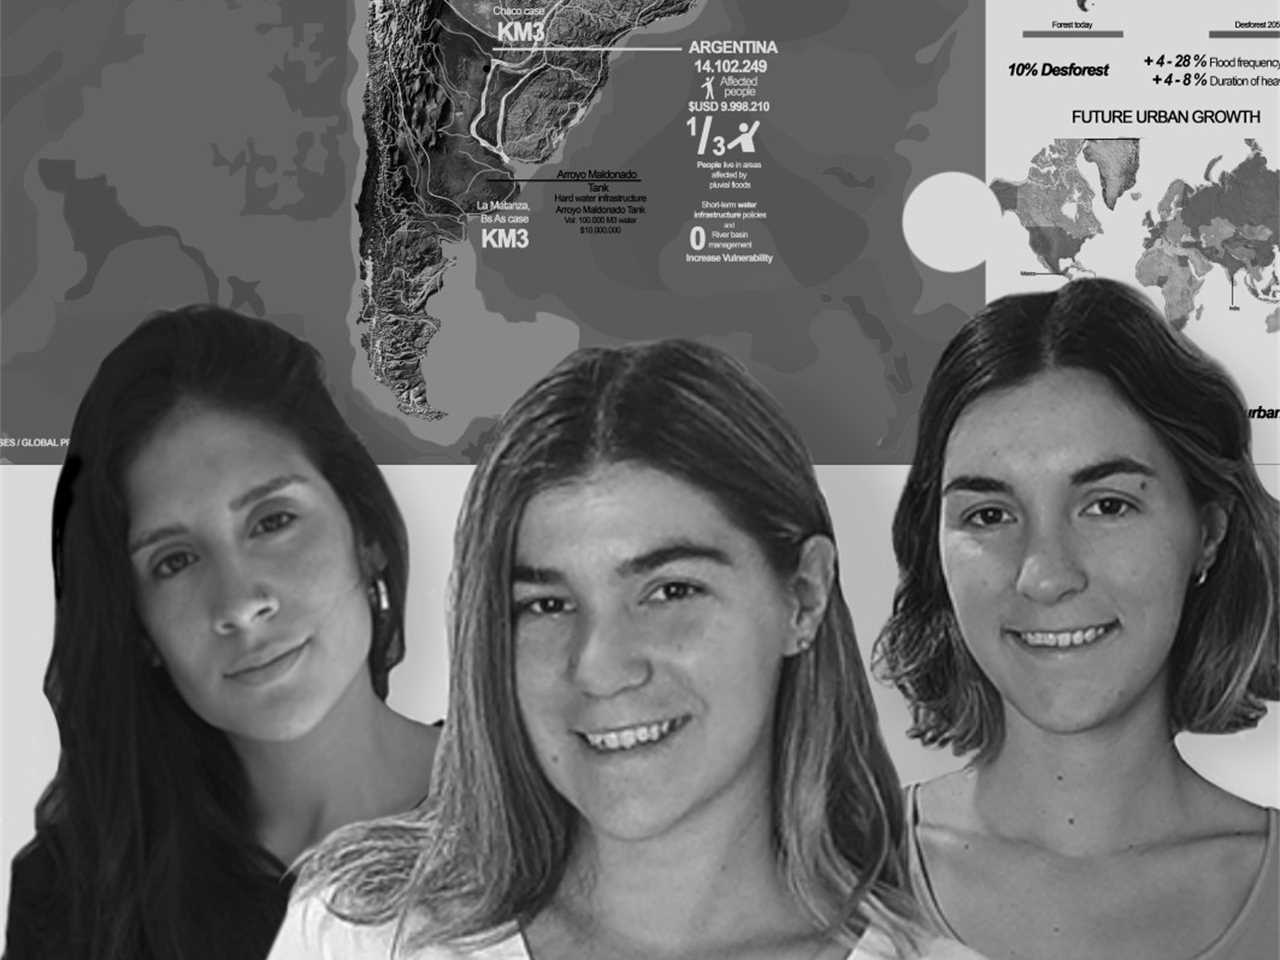 Next Generation 2nd prize for Latin America